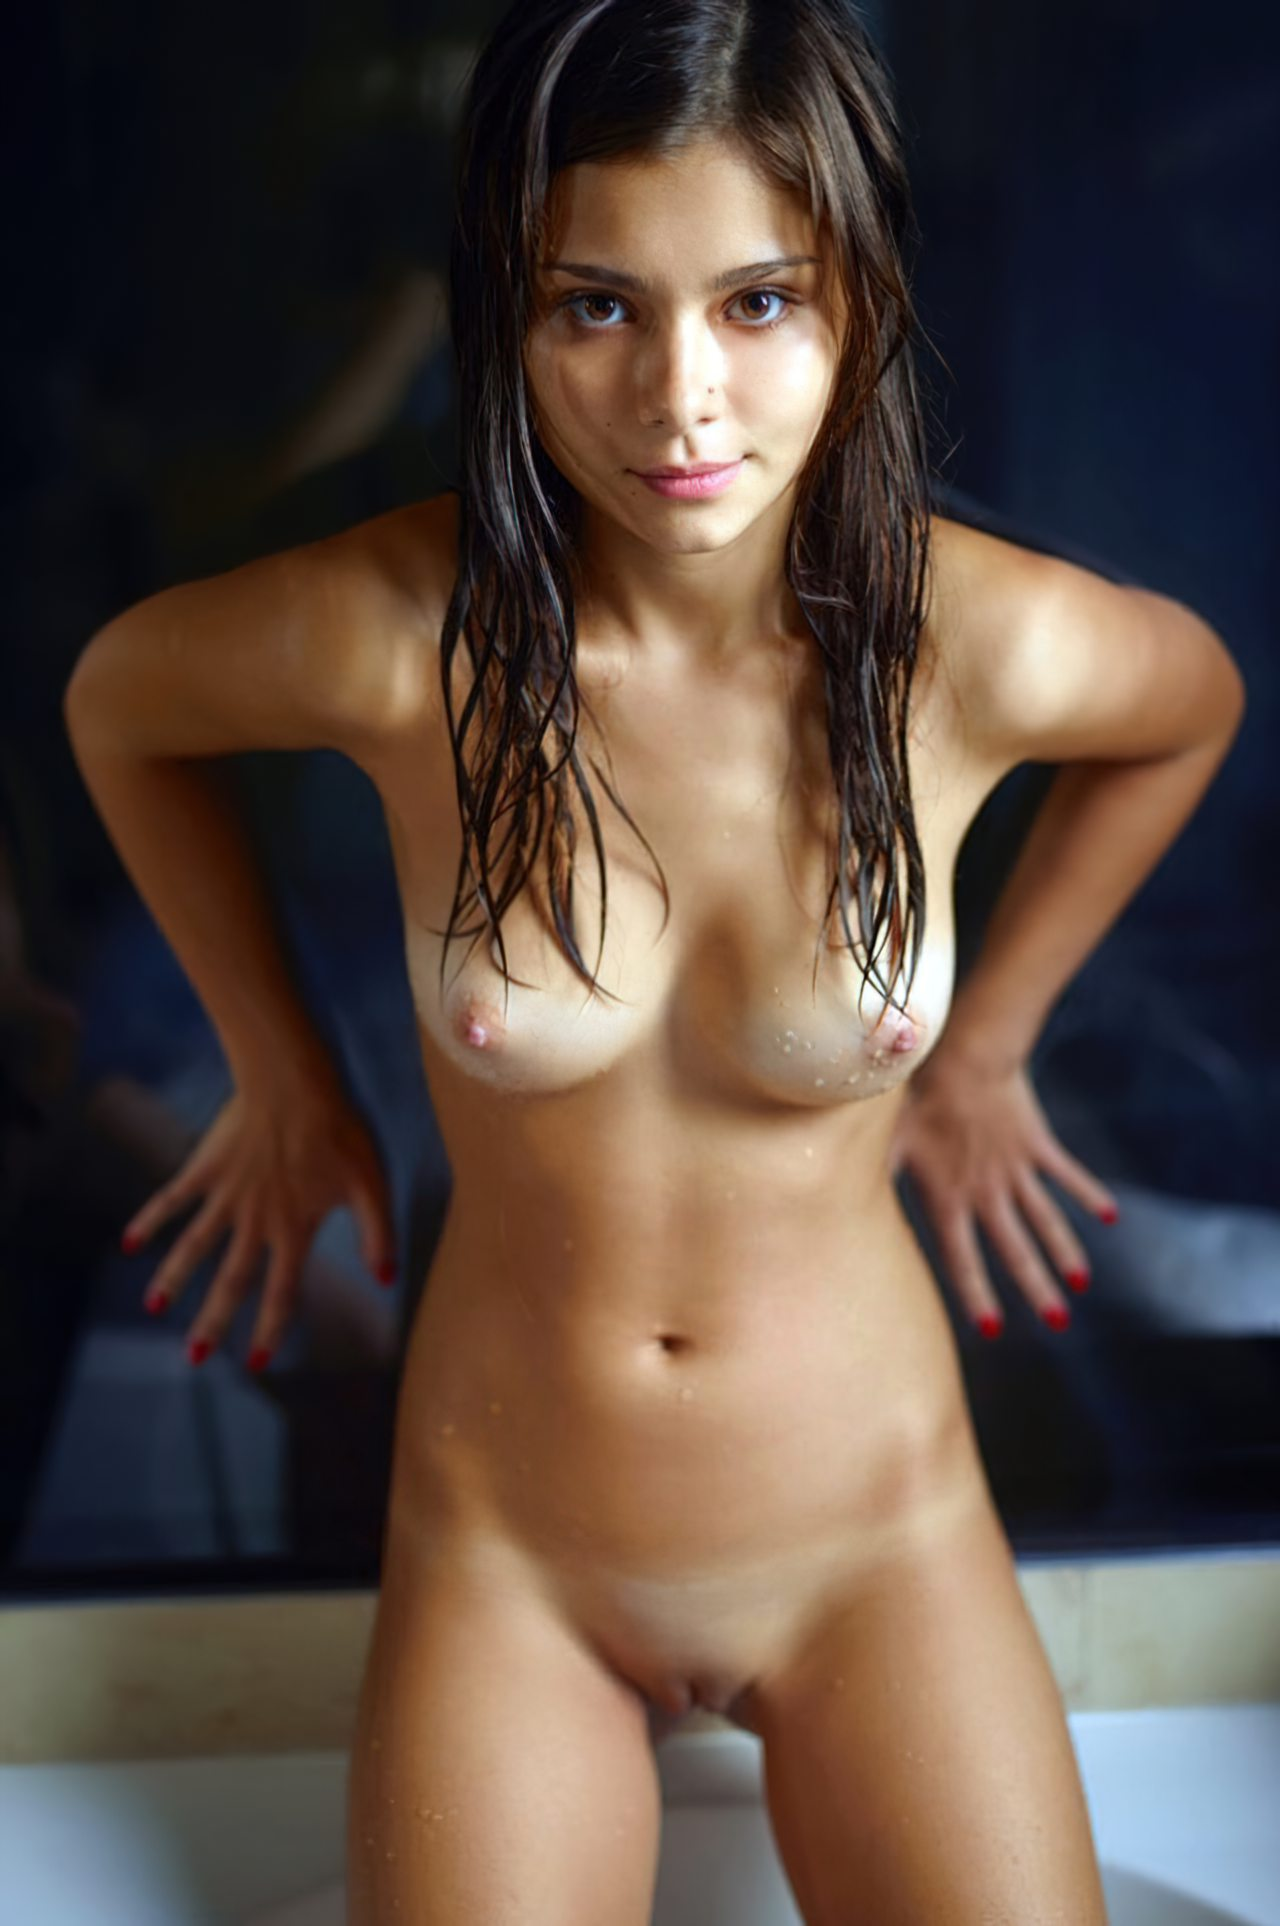 julianna guill nude